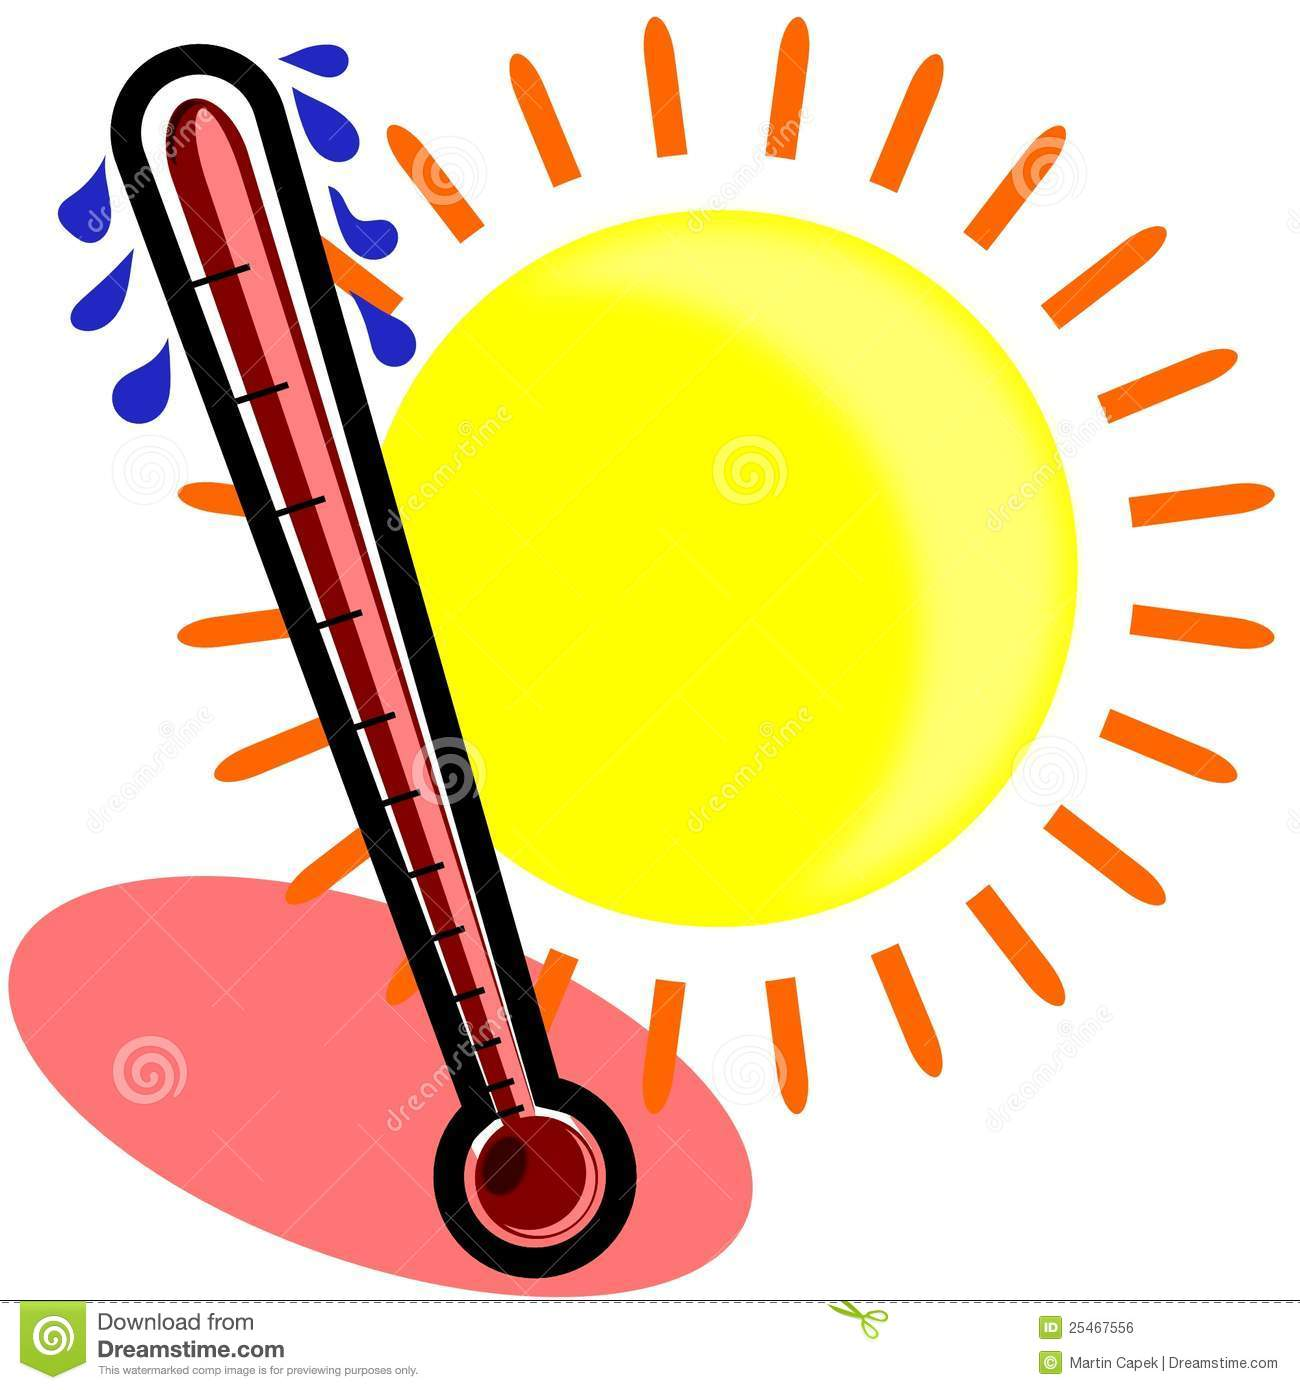 Weather Thermometer Clip Art Clipart Pan-Weather Thermometer Clip Art Clipart Panda Free Clipart Images-2